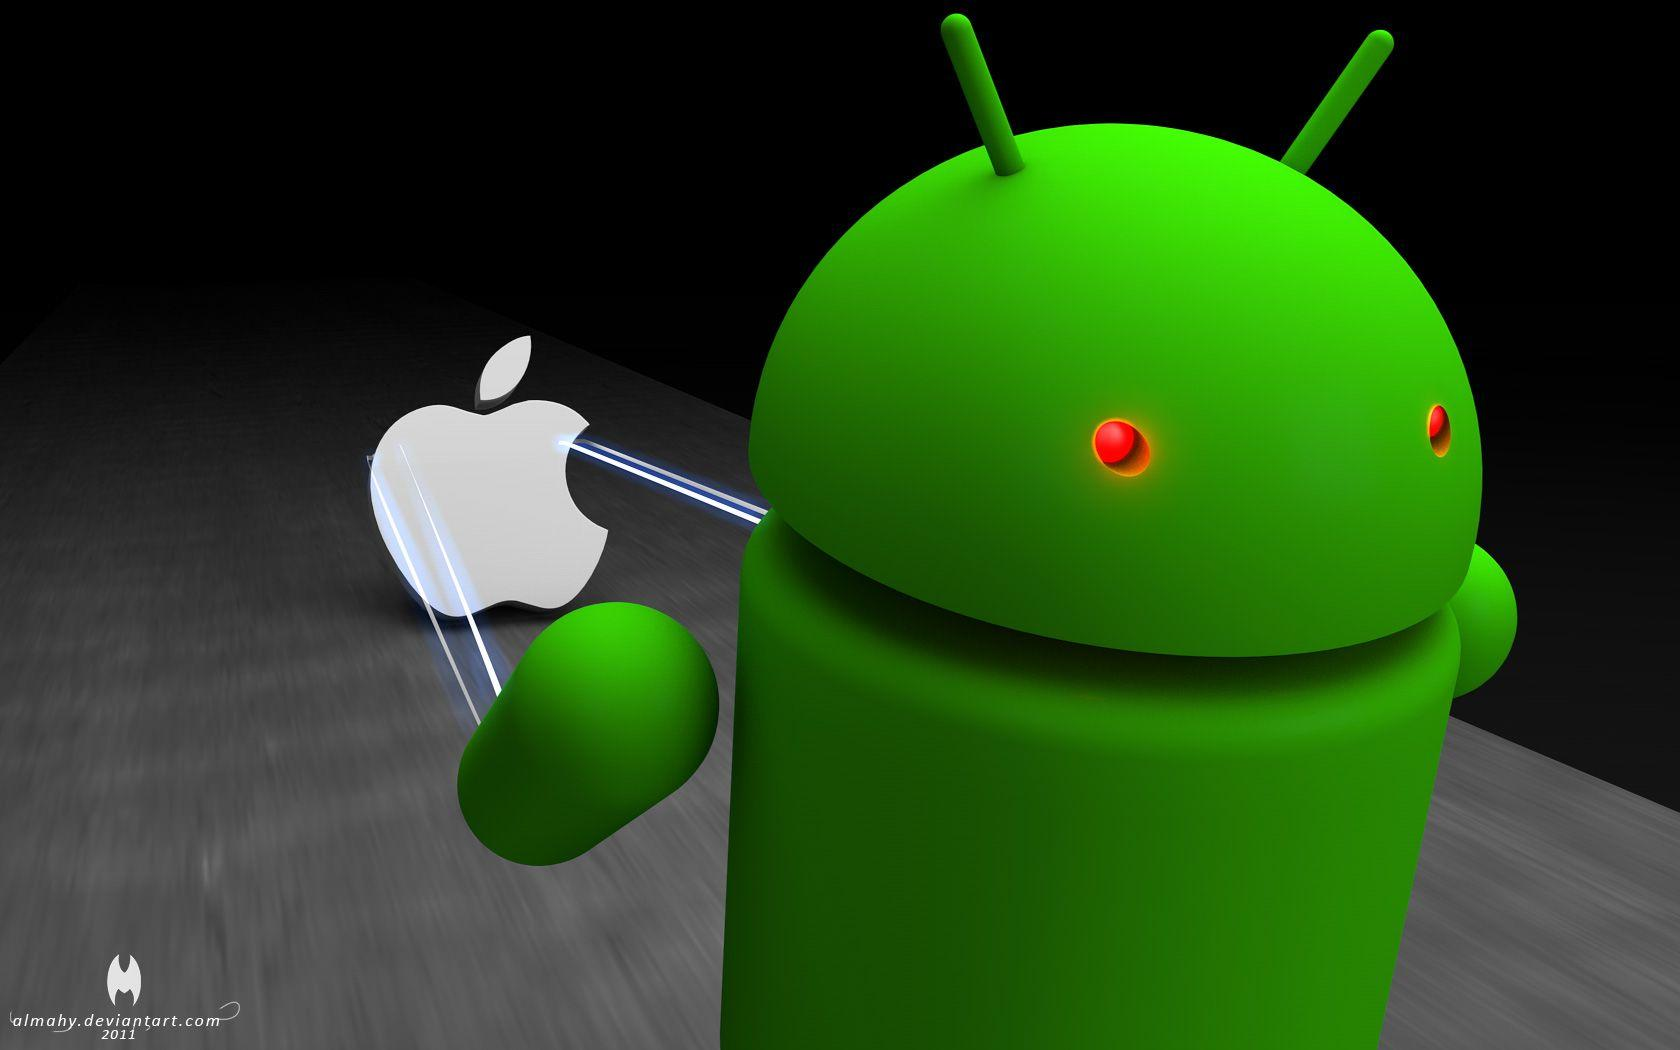 apple vs android wallpapers wallpaper cave